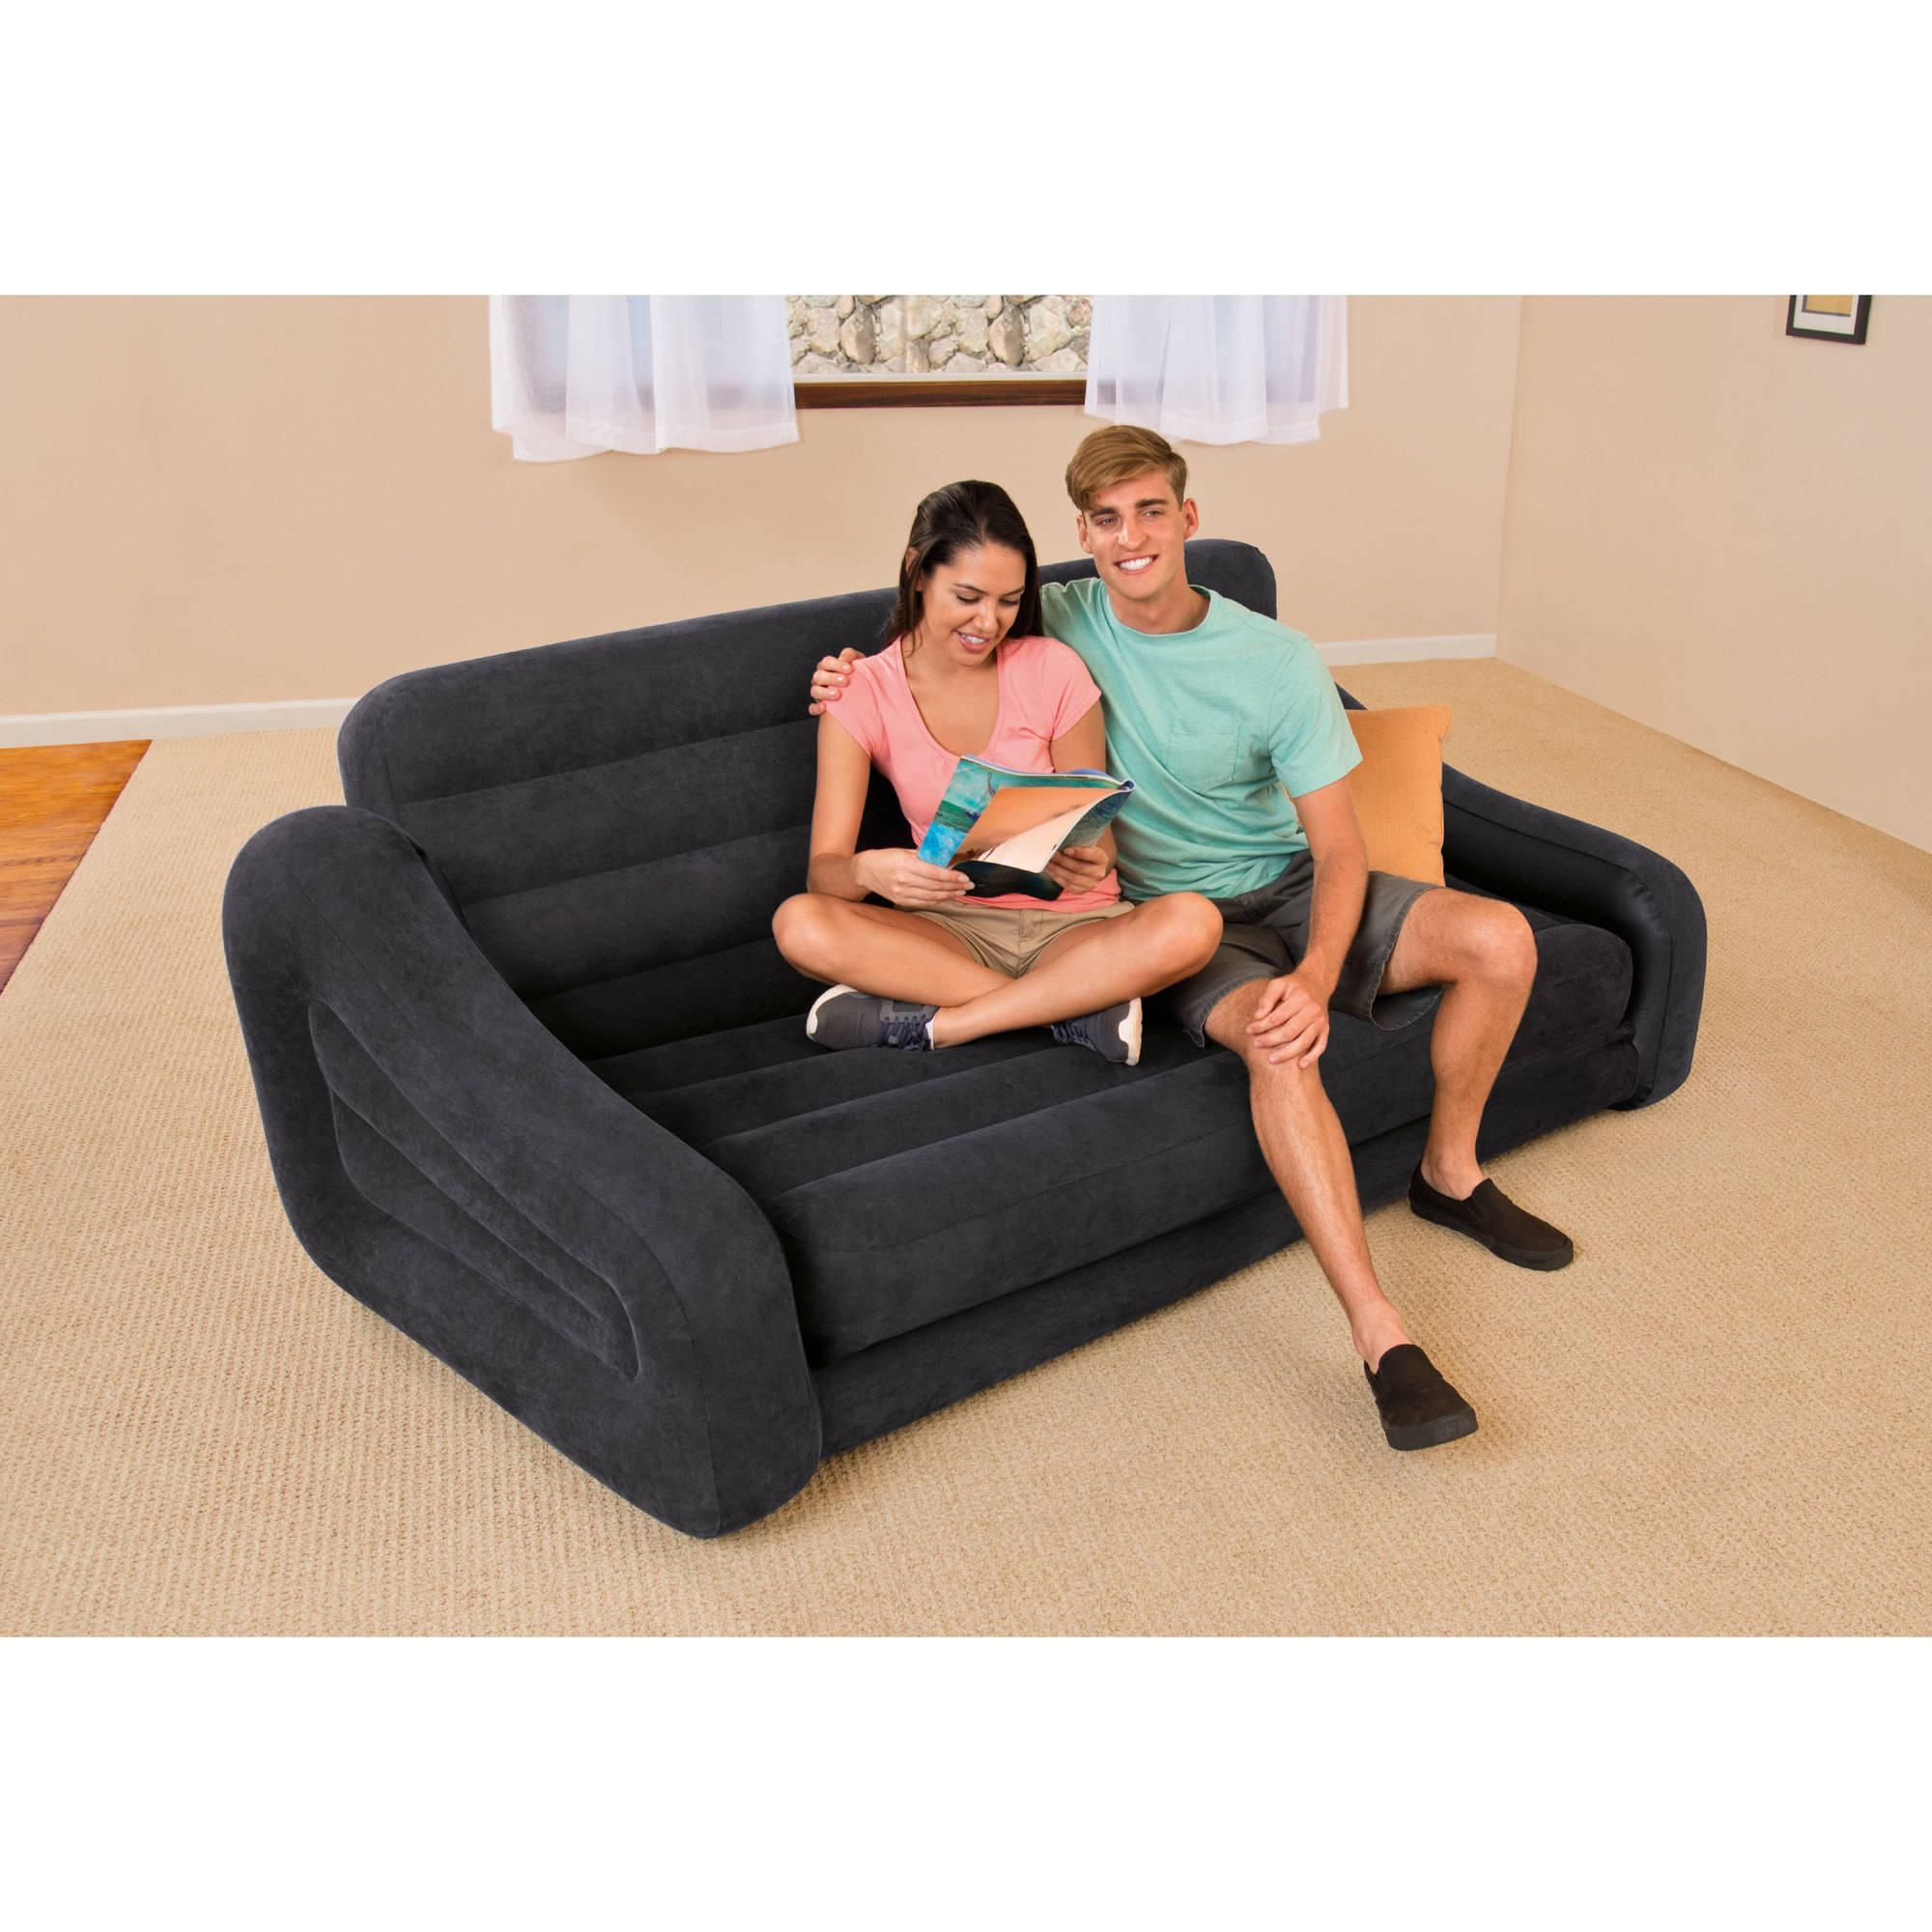 Intex Queen Inflatable Pull Out Sofa Bed – Walmart Inside Intex Sleep Sofas (Image 14 of 20)